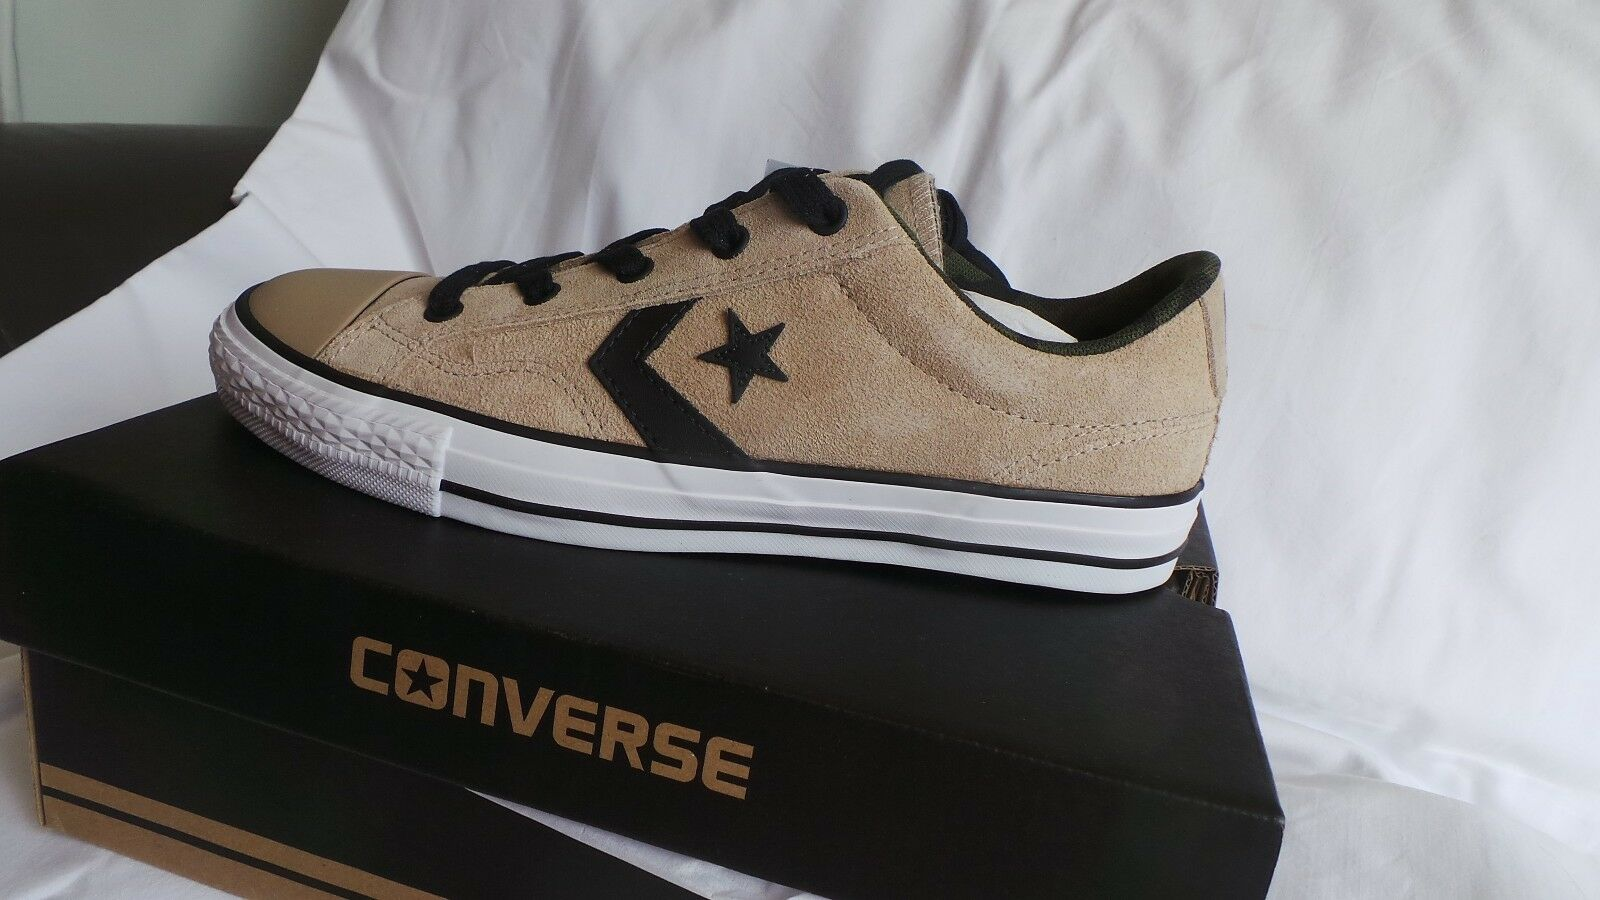 BRAND NEW in box Converse Leather Star Player Ox trainers